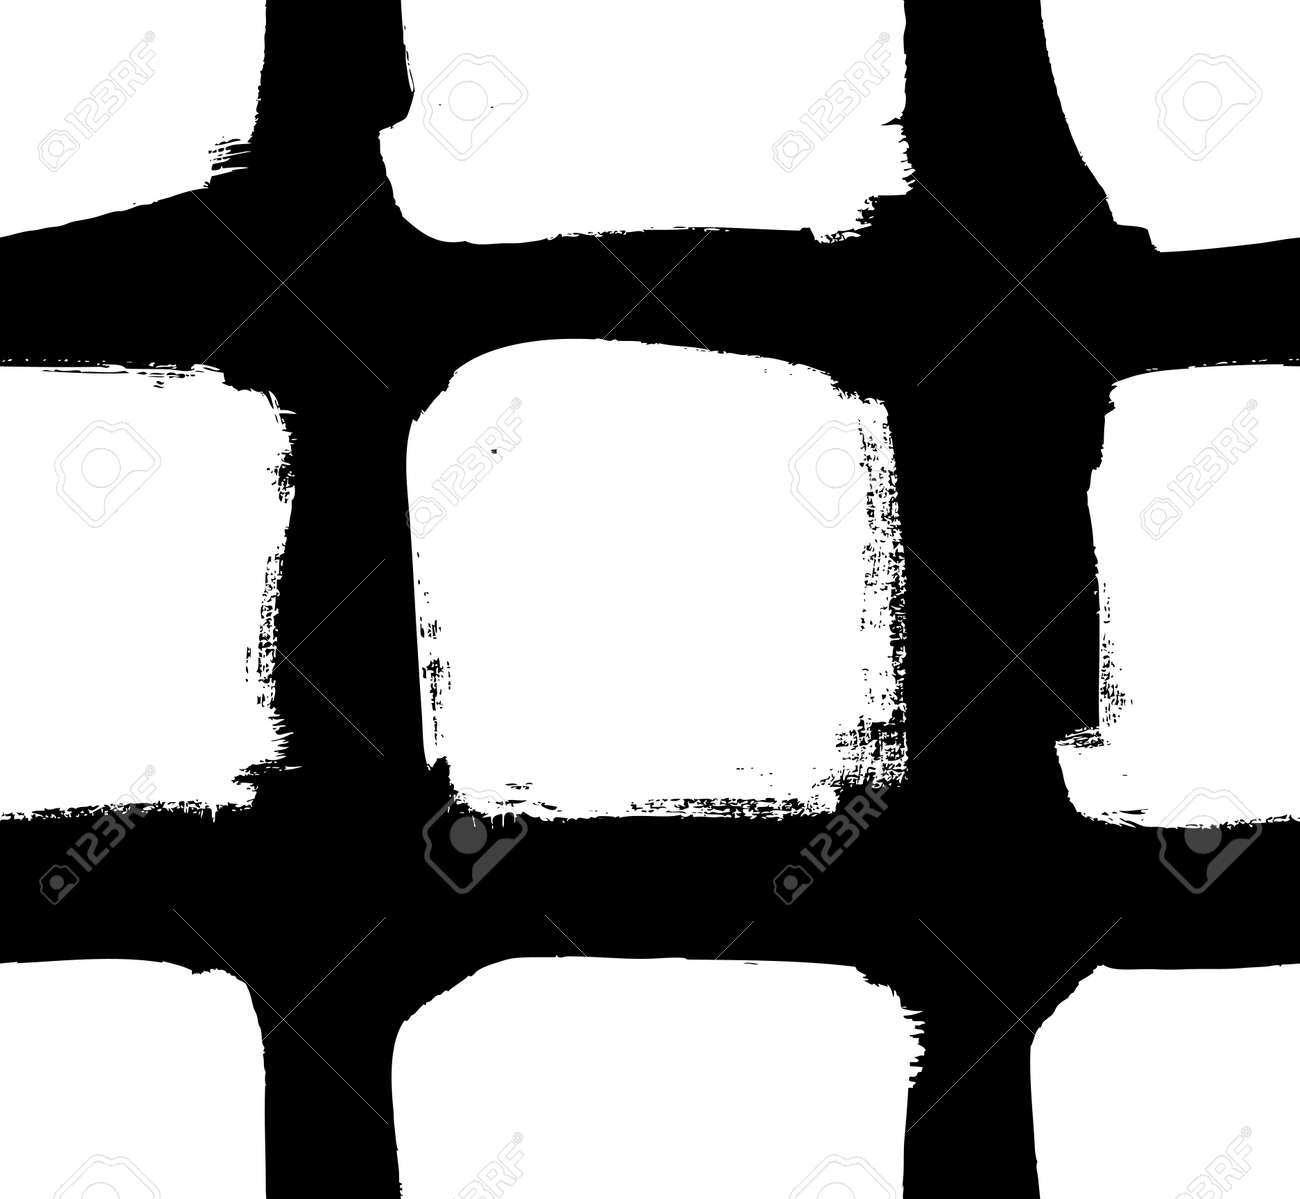 Paint drawing seamless pattern black and white squares. Hand drawn abstract illustration grunge elements. Vector abstract objects for design - 165155231